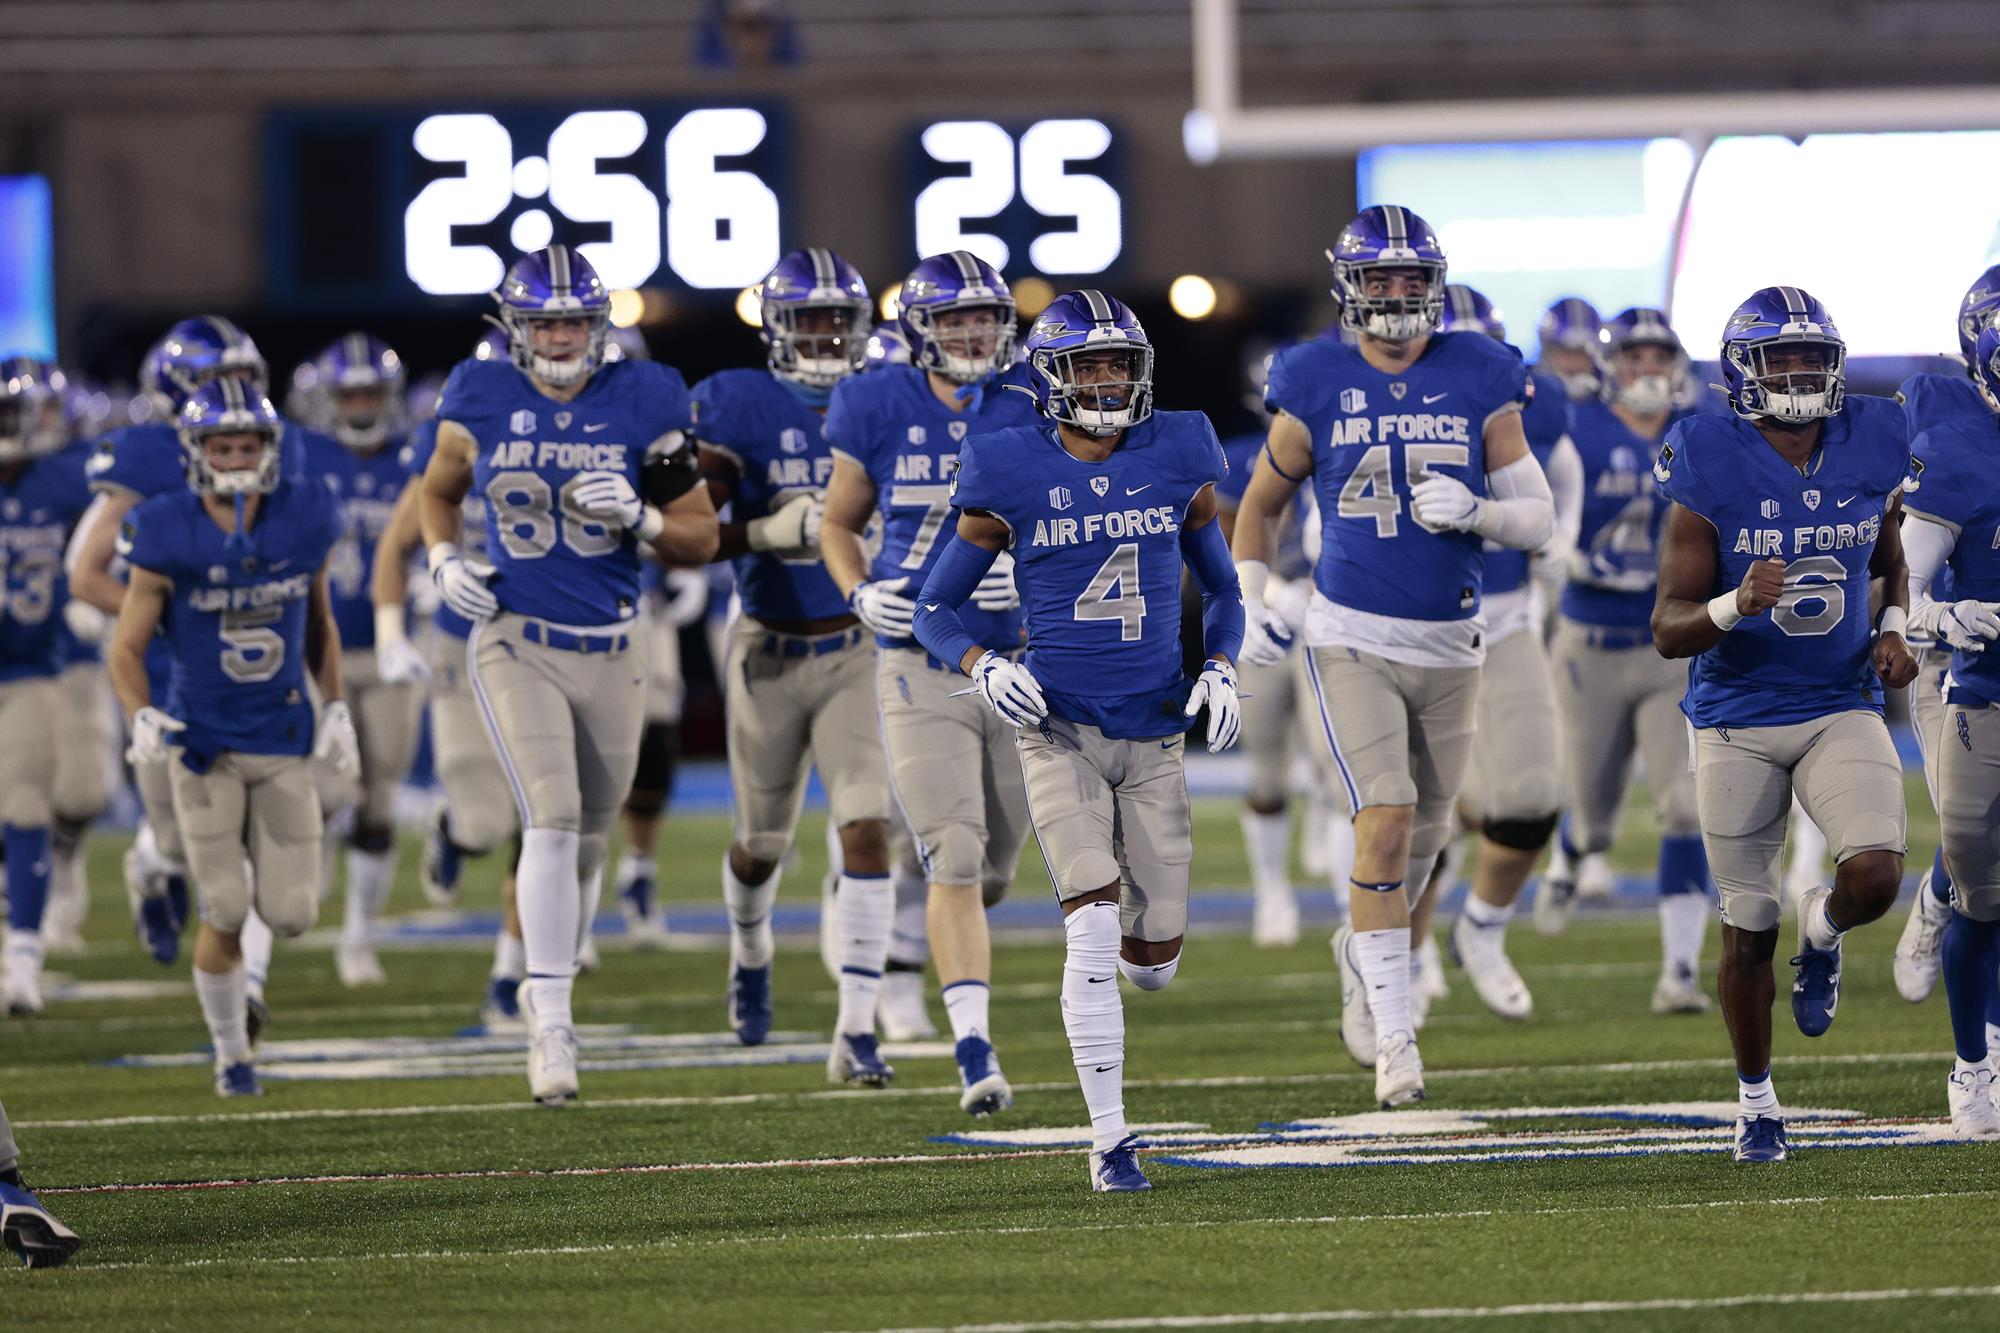 Complete Air Force Football Schedule With Television Kick Times Announced Air Force Academy Athletics